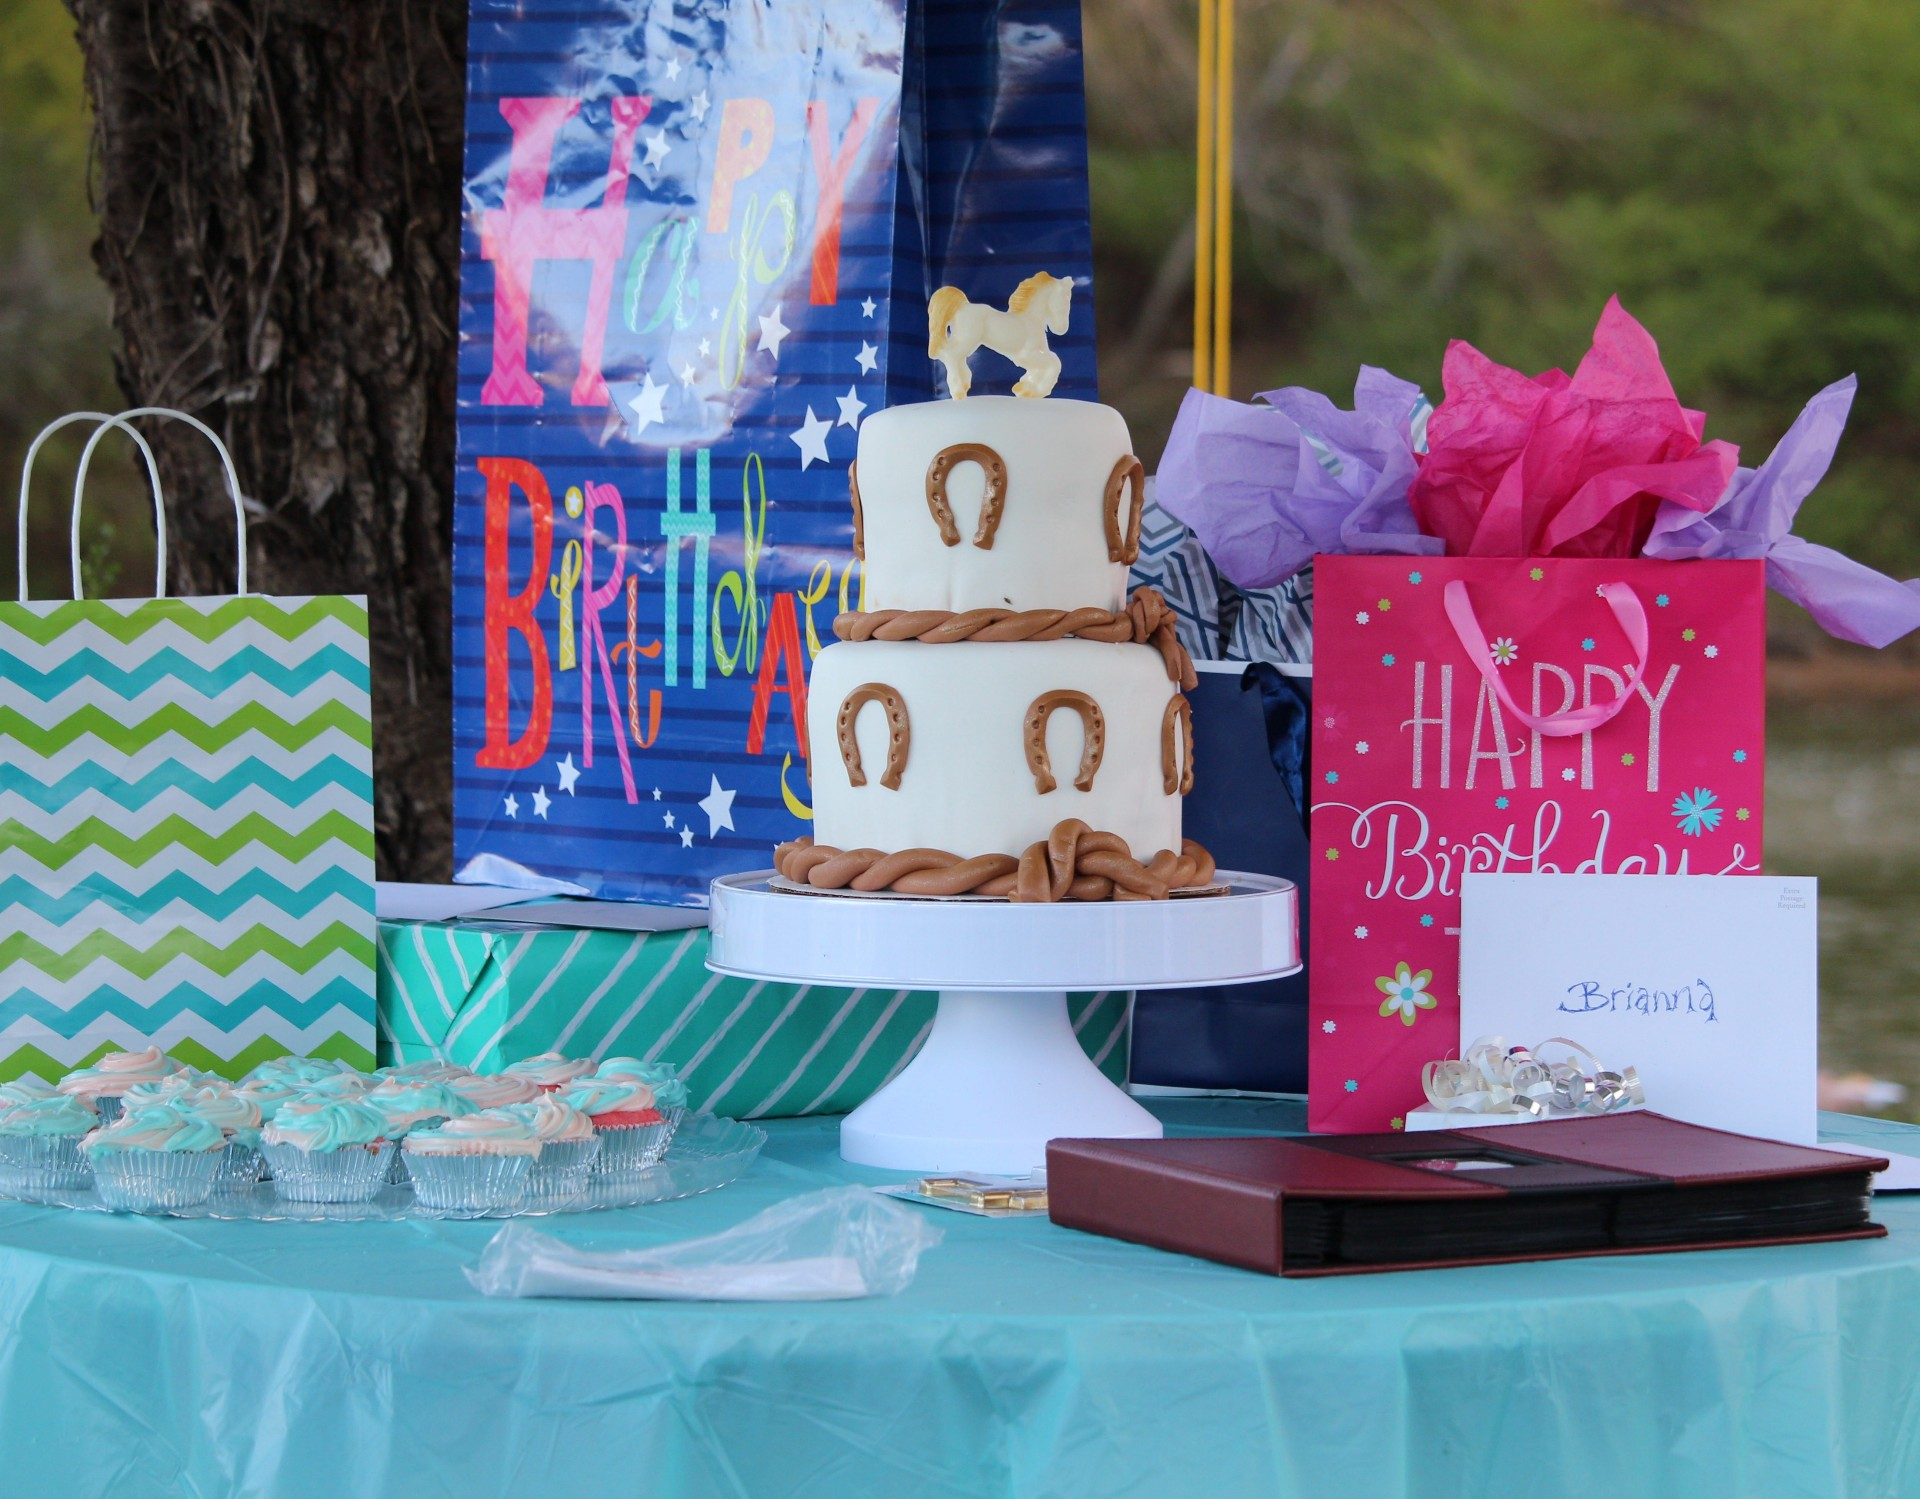 Astounding Cake Presents Events By The River Funny Birthday Cards Online Sheoxdamsfinfo